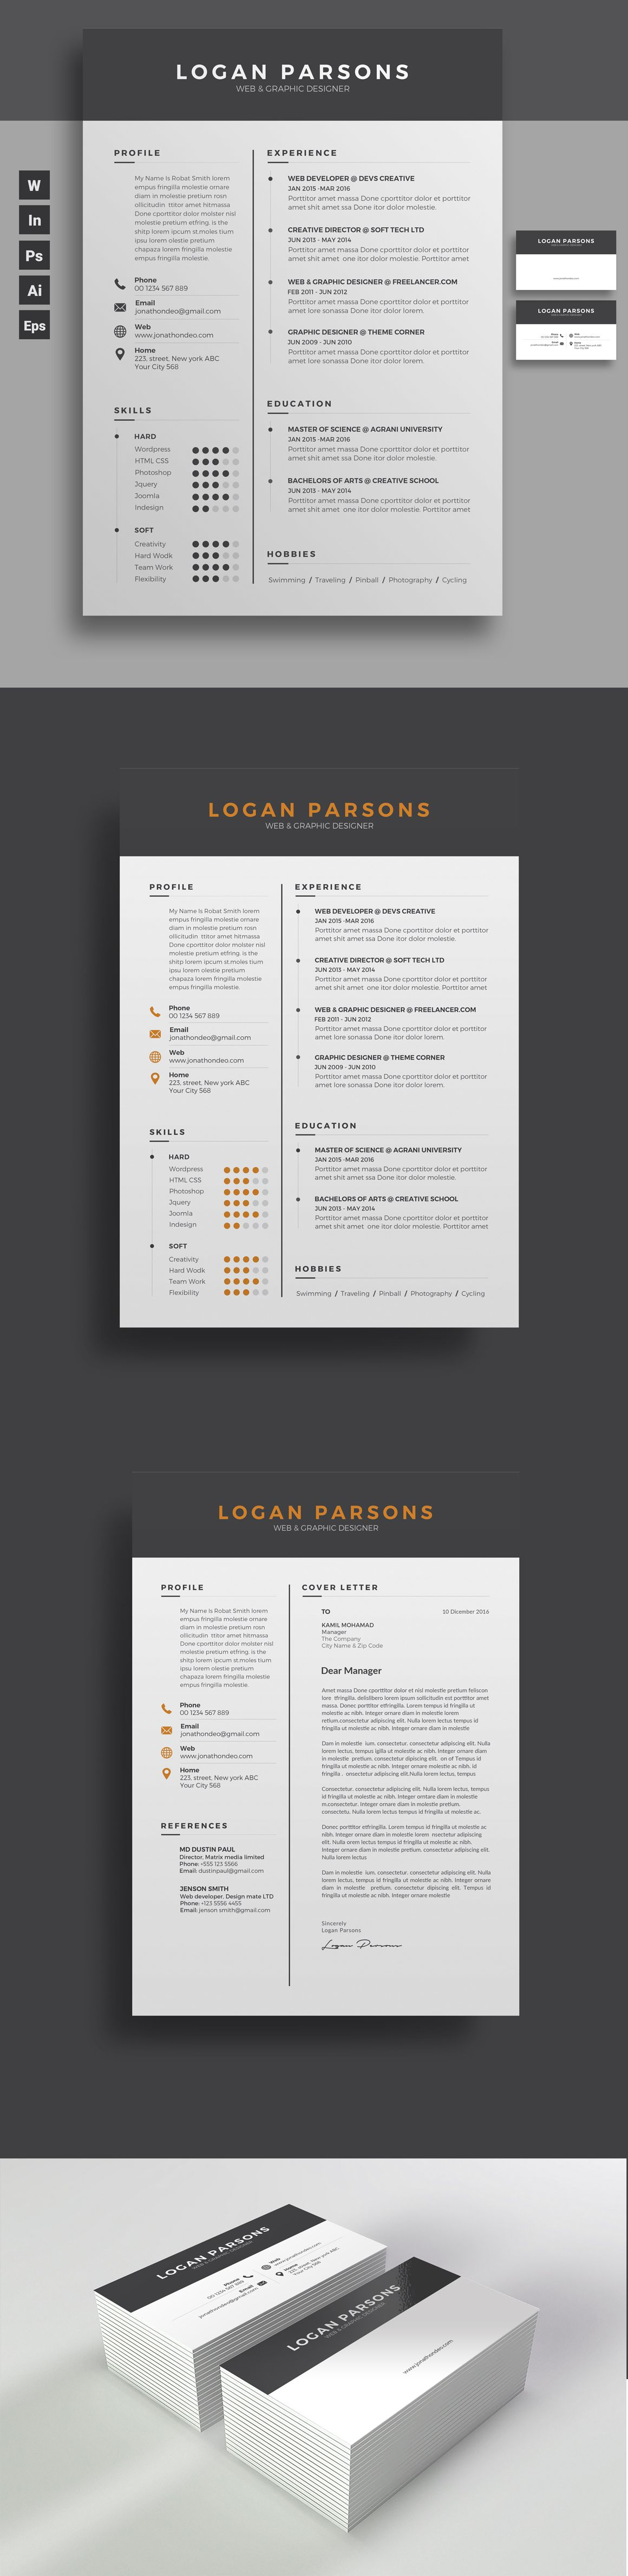 Resumecv clean resume design template with free coverletter and business card psd template instant download microsoft reheart Image collections